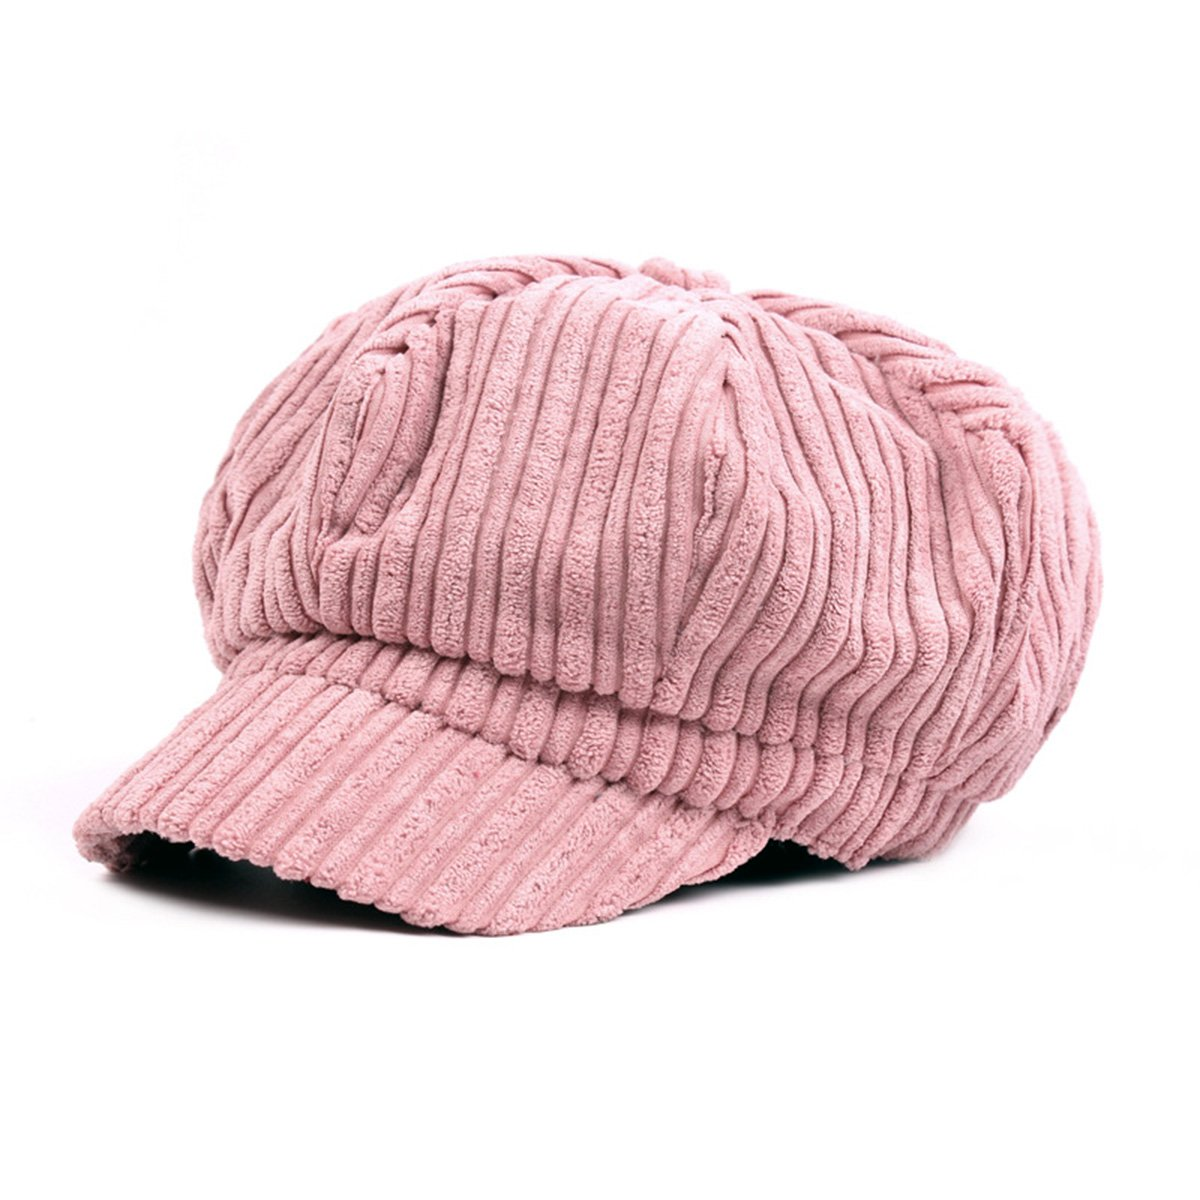 ZLSLZ Womens Corduroy Striped Octagonal Ivy Newsboy Cabbie Gatsby Painter Hats Caps For Women